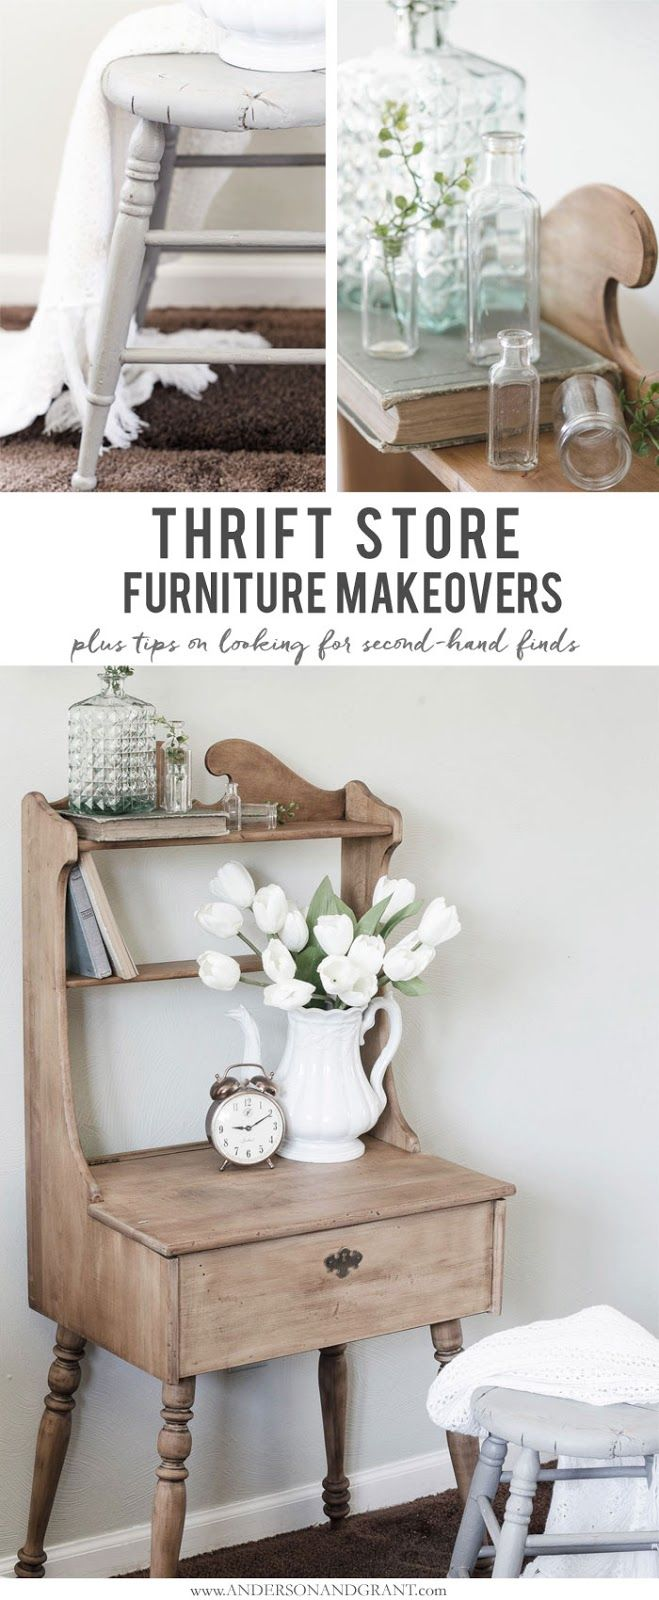 See a thrift store desk and stool transformed into stylish farmhouse decor, plus get tips on finding the best items second hand!